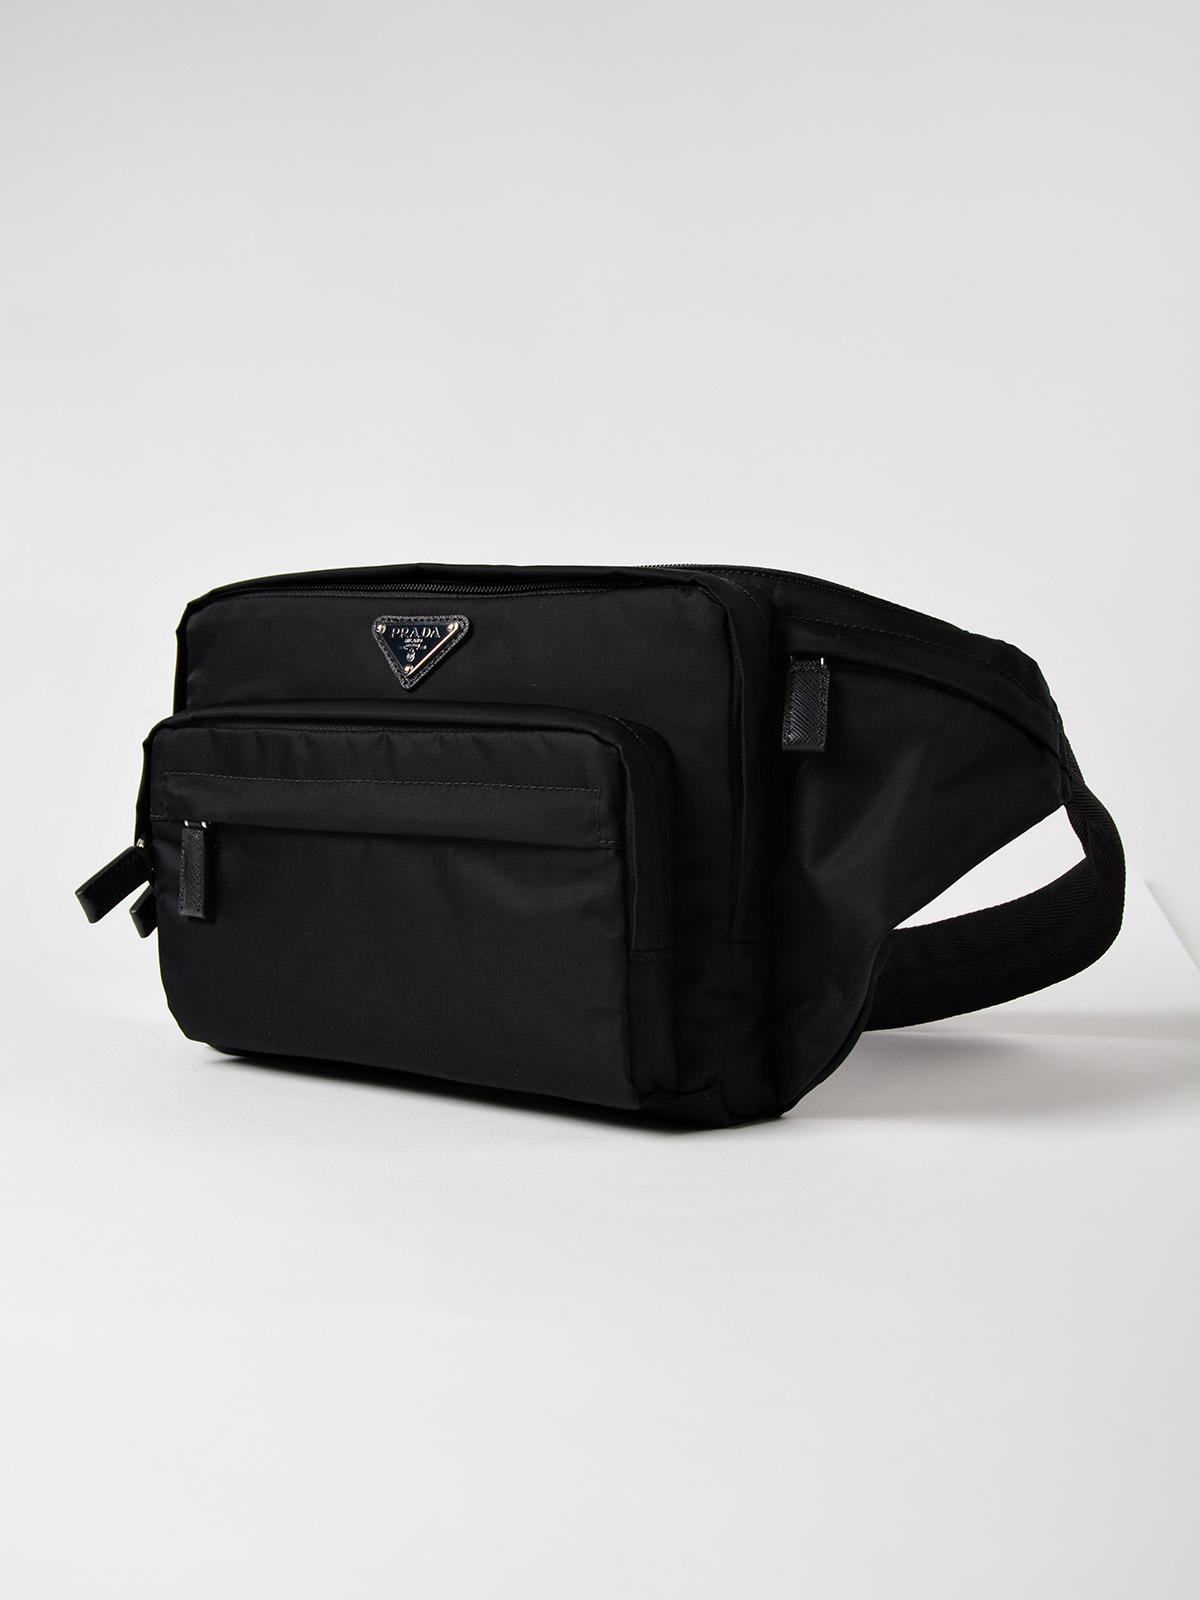 7fdc6c79a958 Lyst - Prada Tessuto Montagna Belt Bag in Black for Men